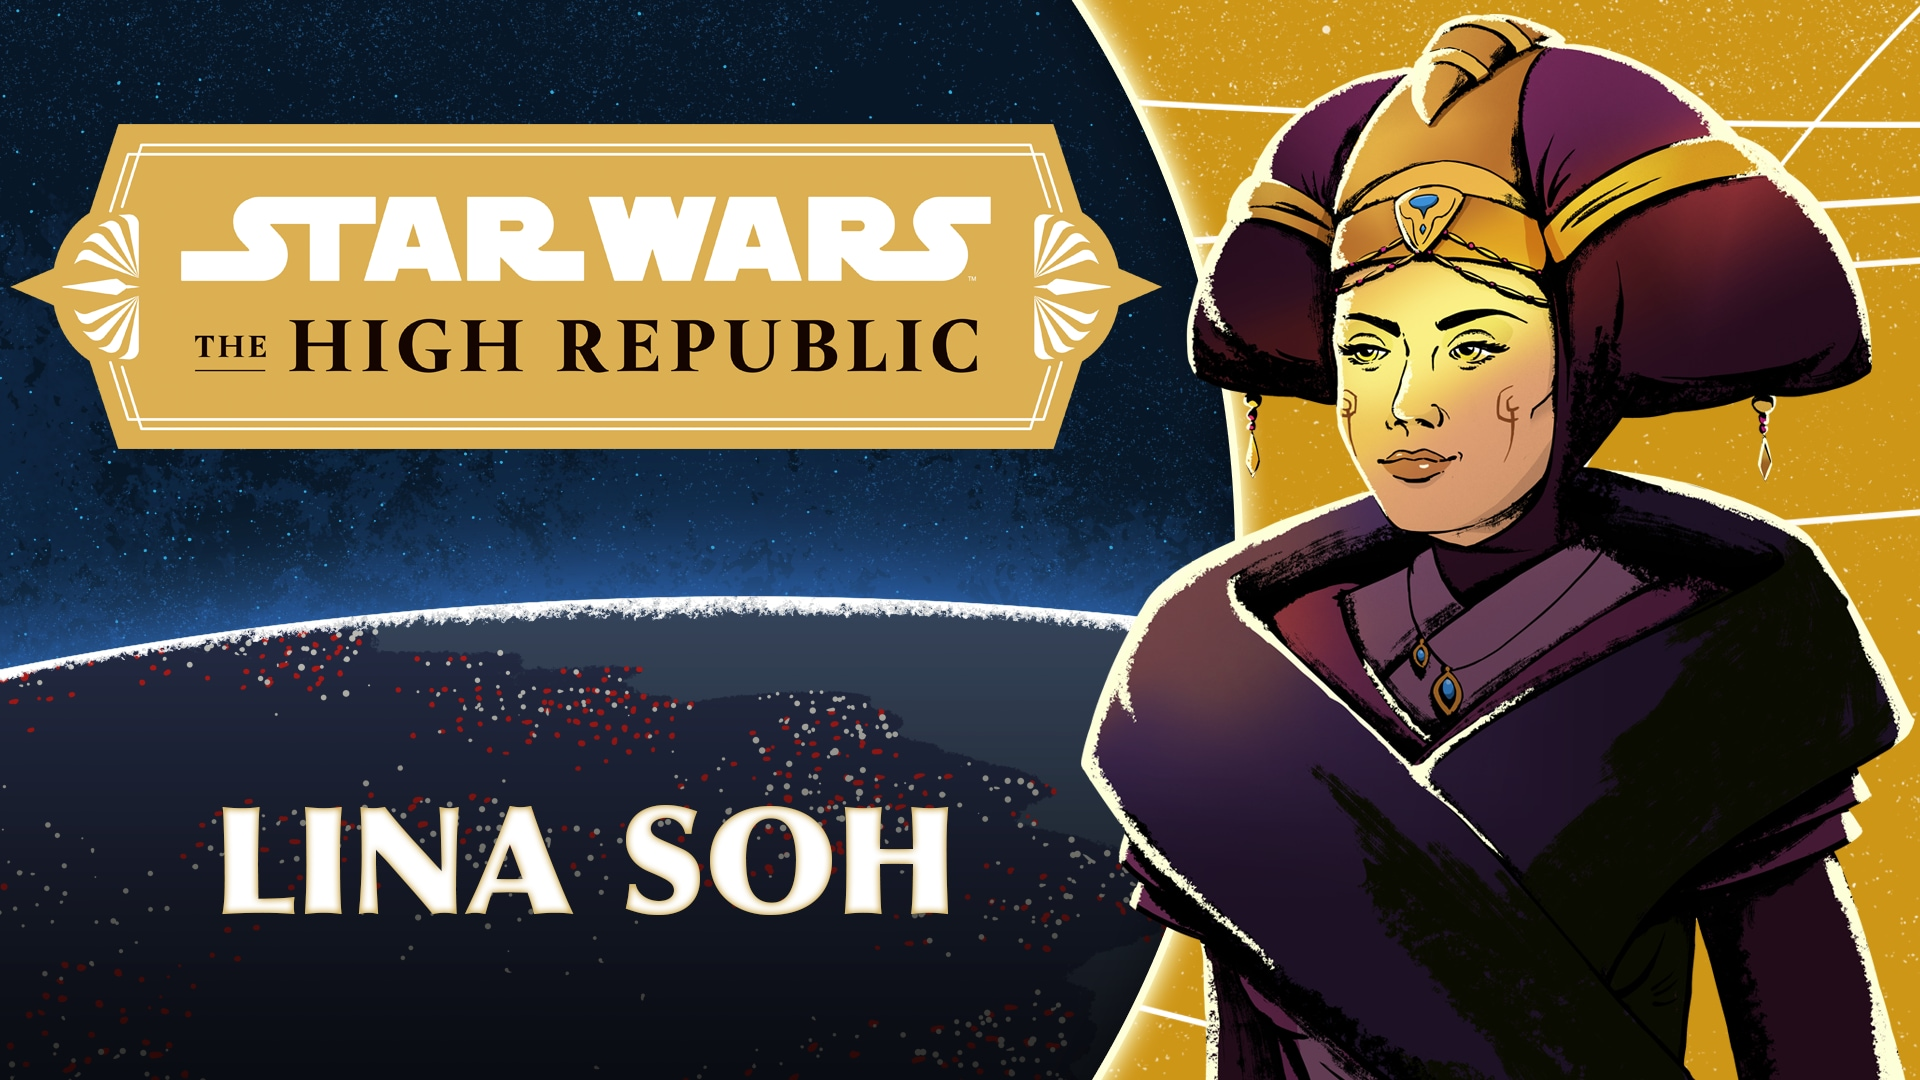 Chancellor Lina Soh | Characters of Star Wars: The High Republic